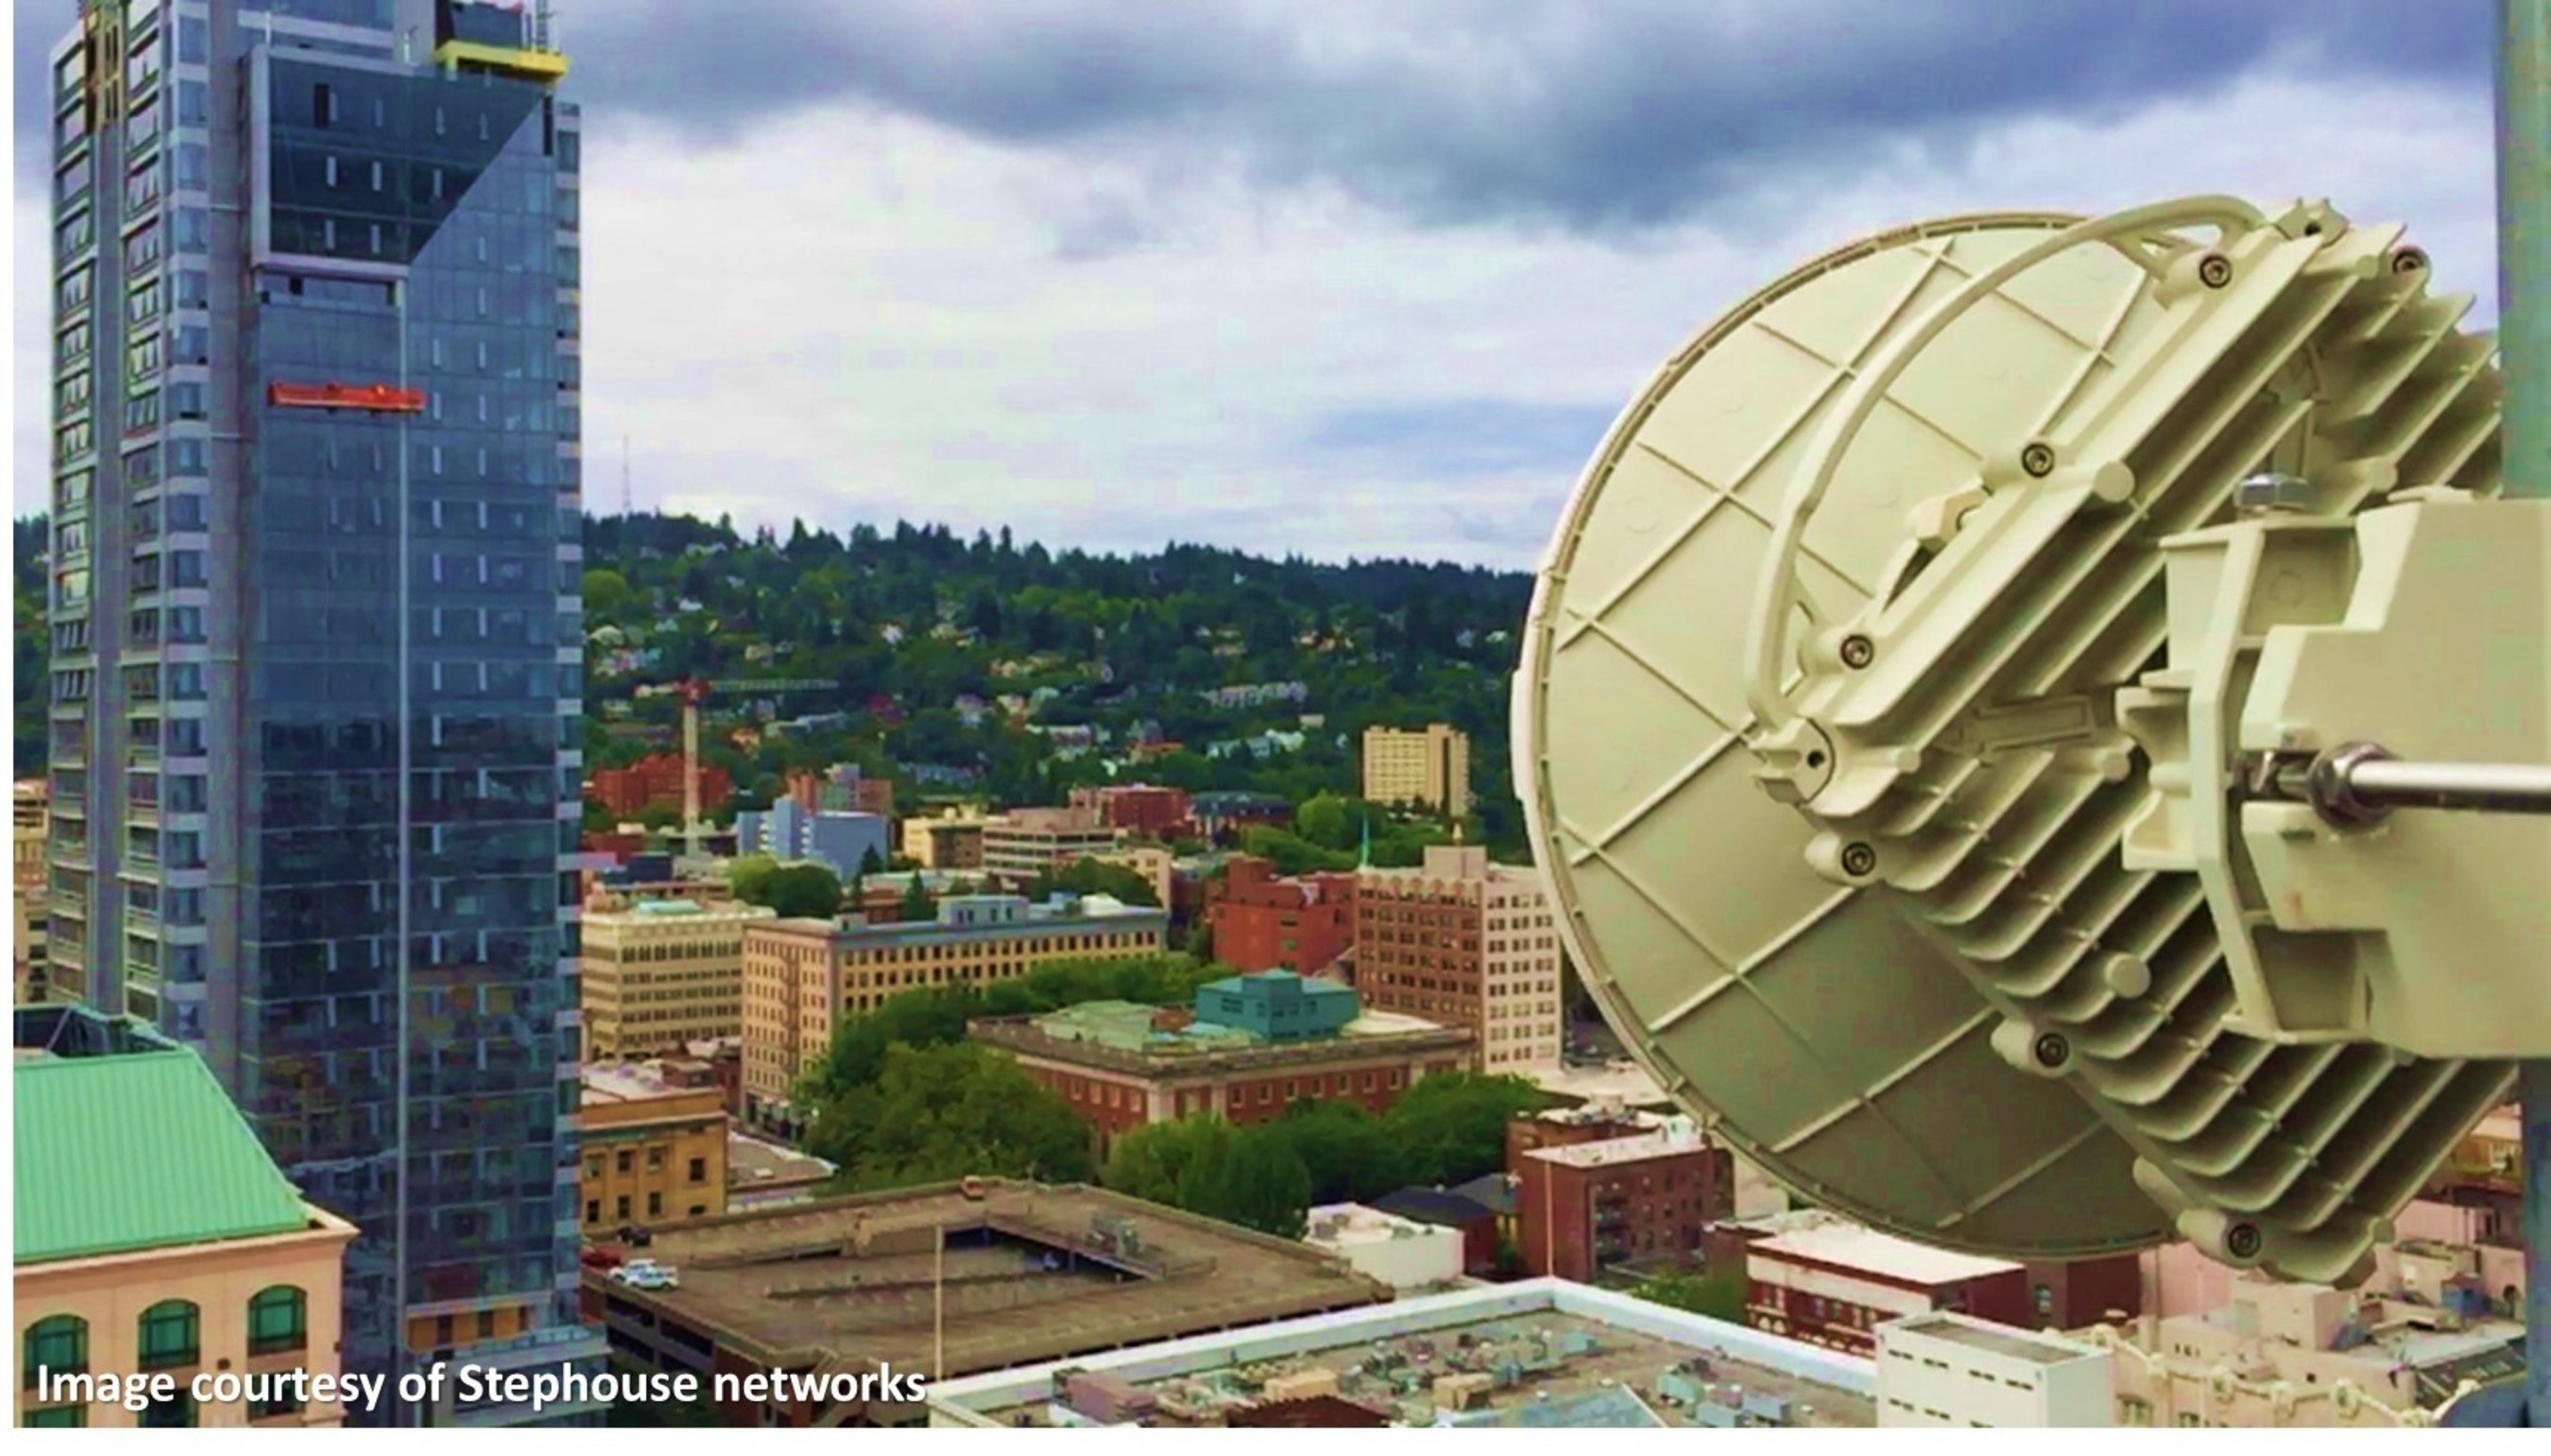 Siklu Chosen as Primary Supplier of Gigabit Wireless Connectivity by Portland ISP, Stephouse